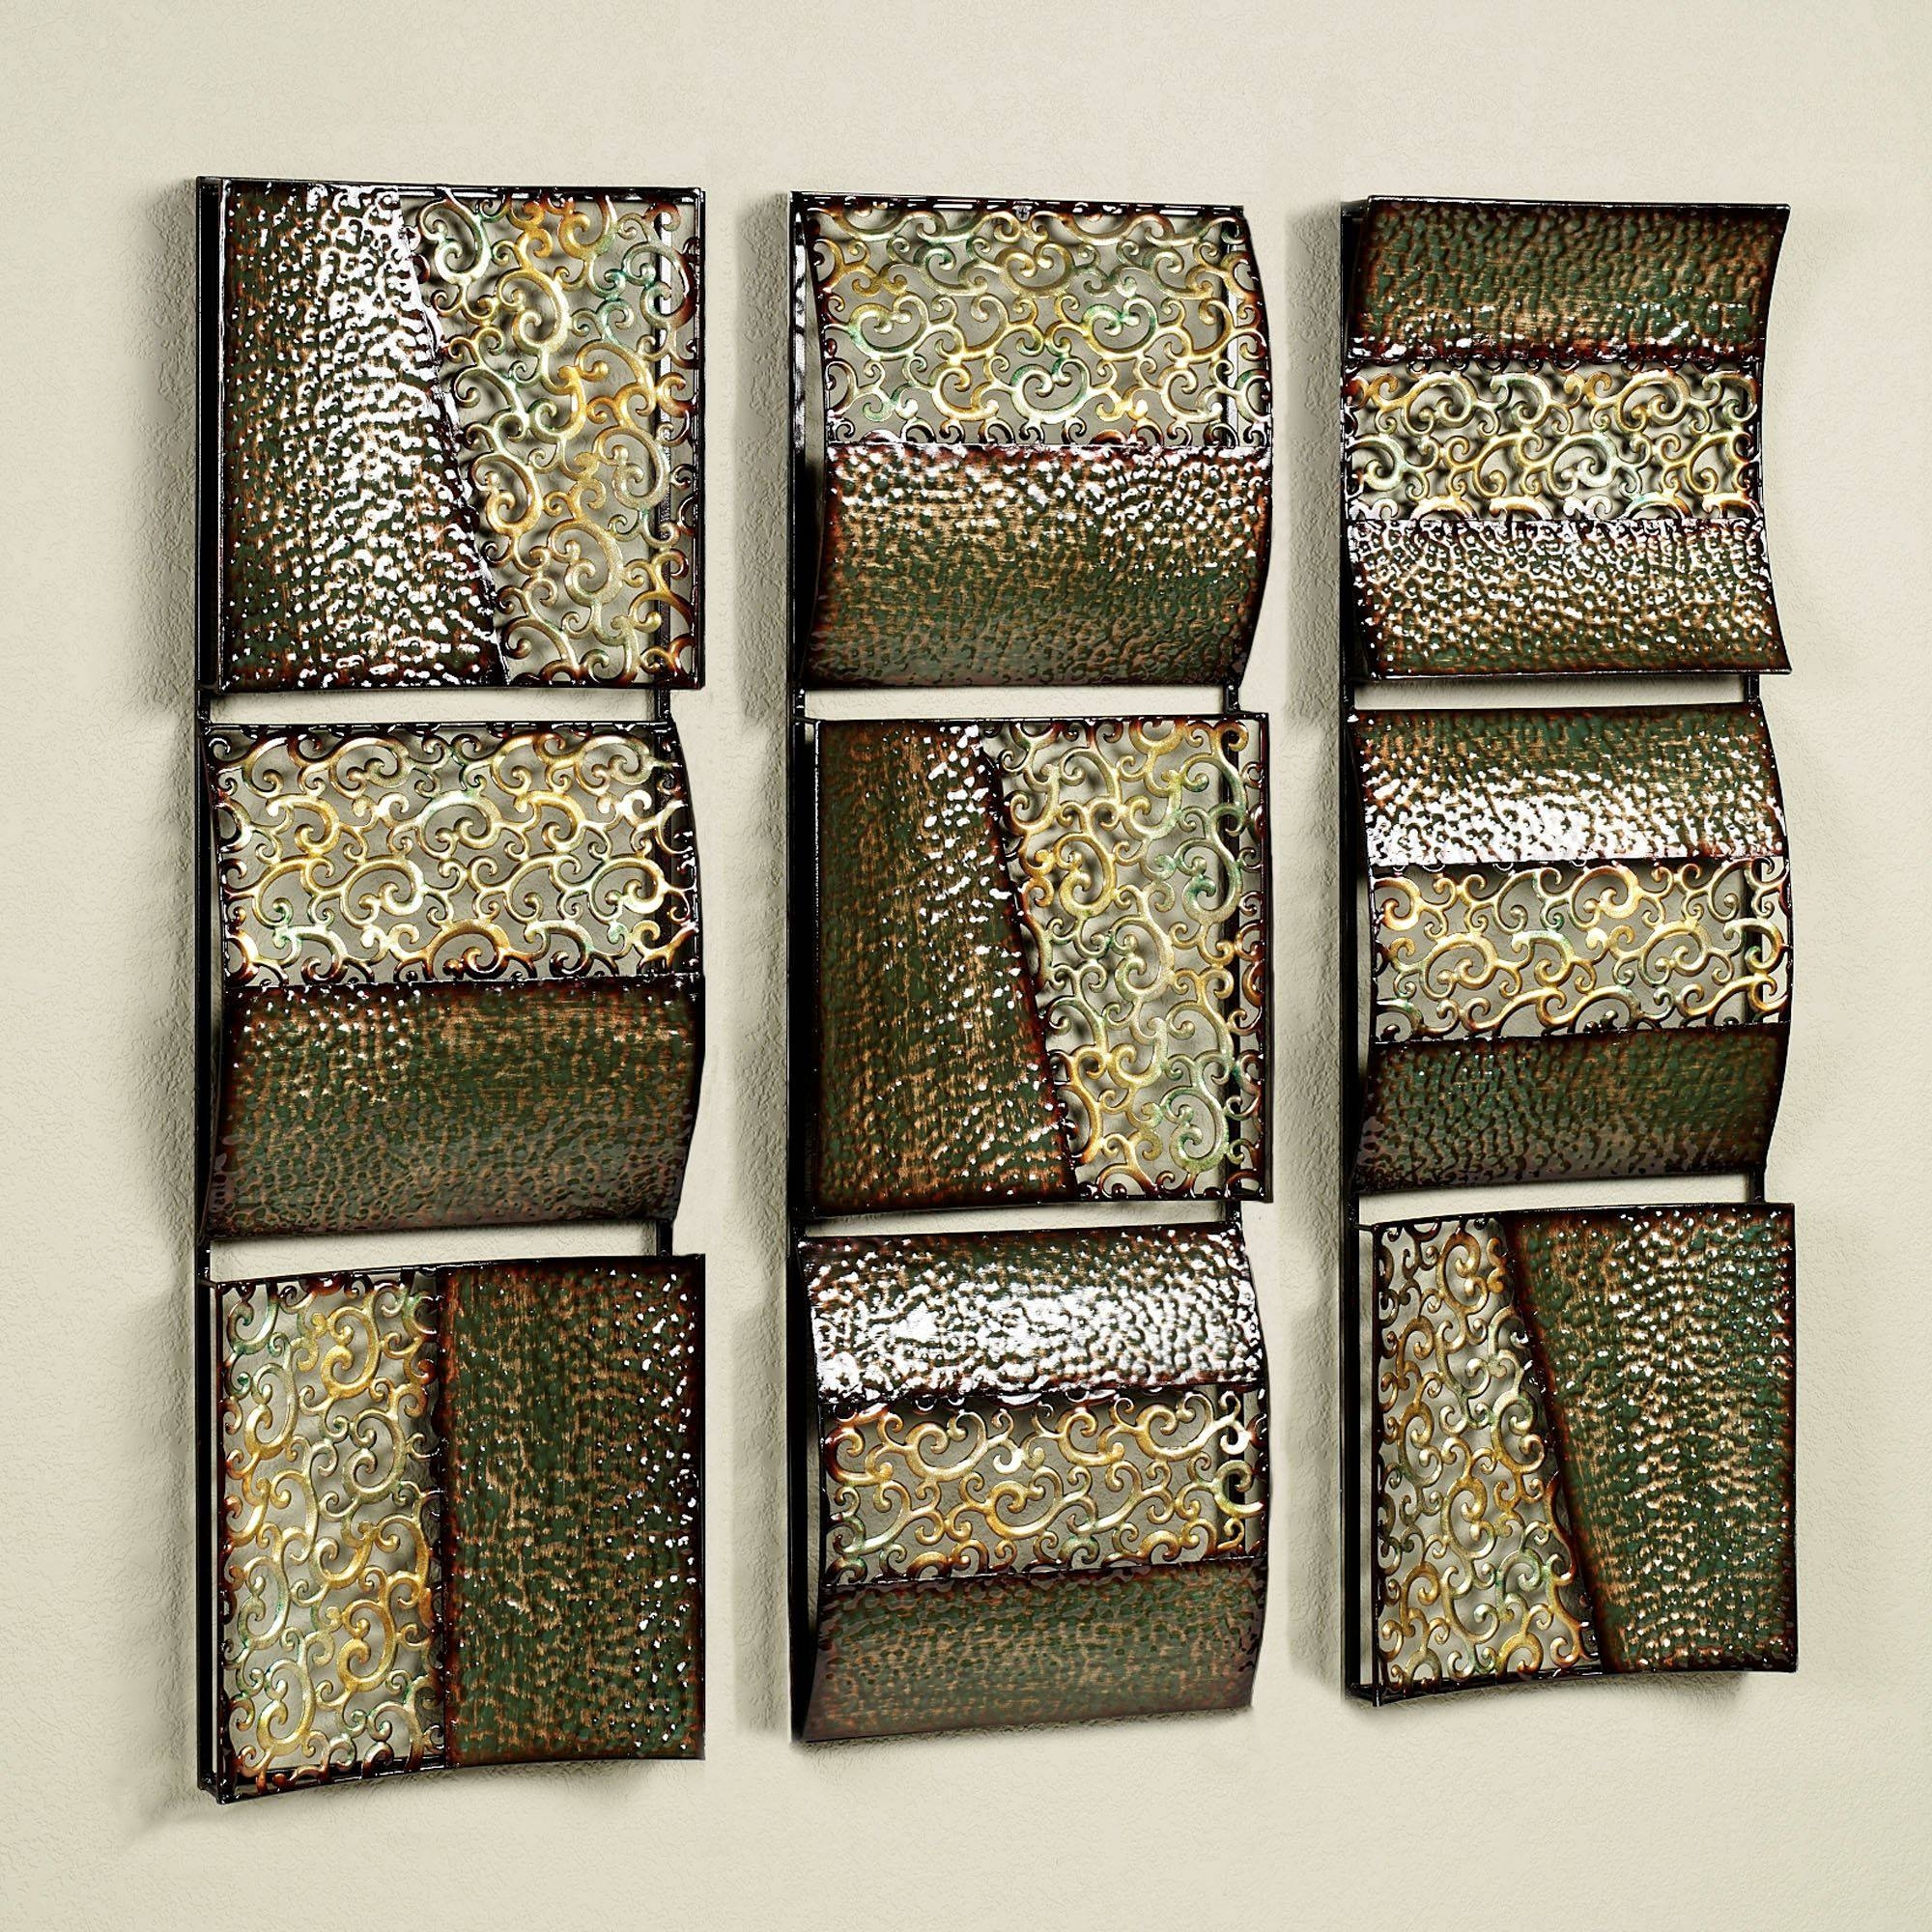 Metal Wall Art Panels | Roselawnlutheran Regarding Most Up To Date Ash Carl Metal Art (View 13 of 30)